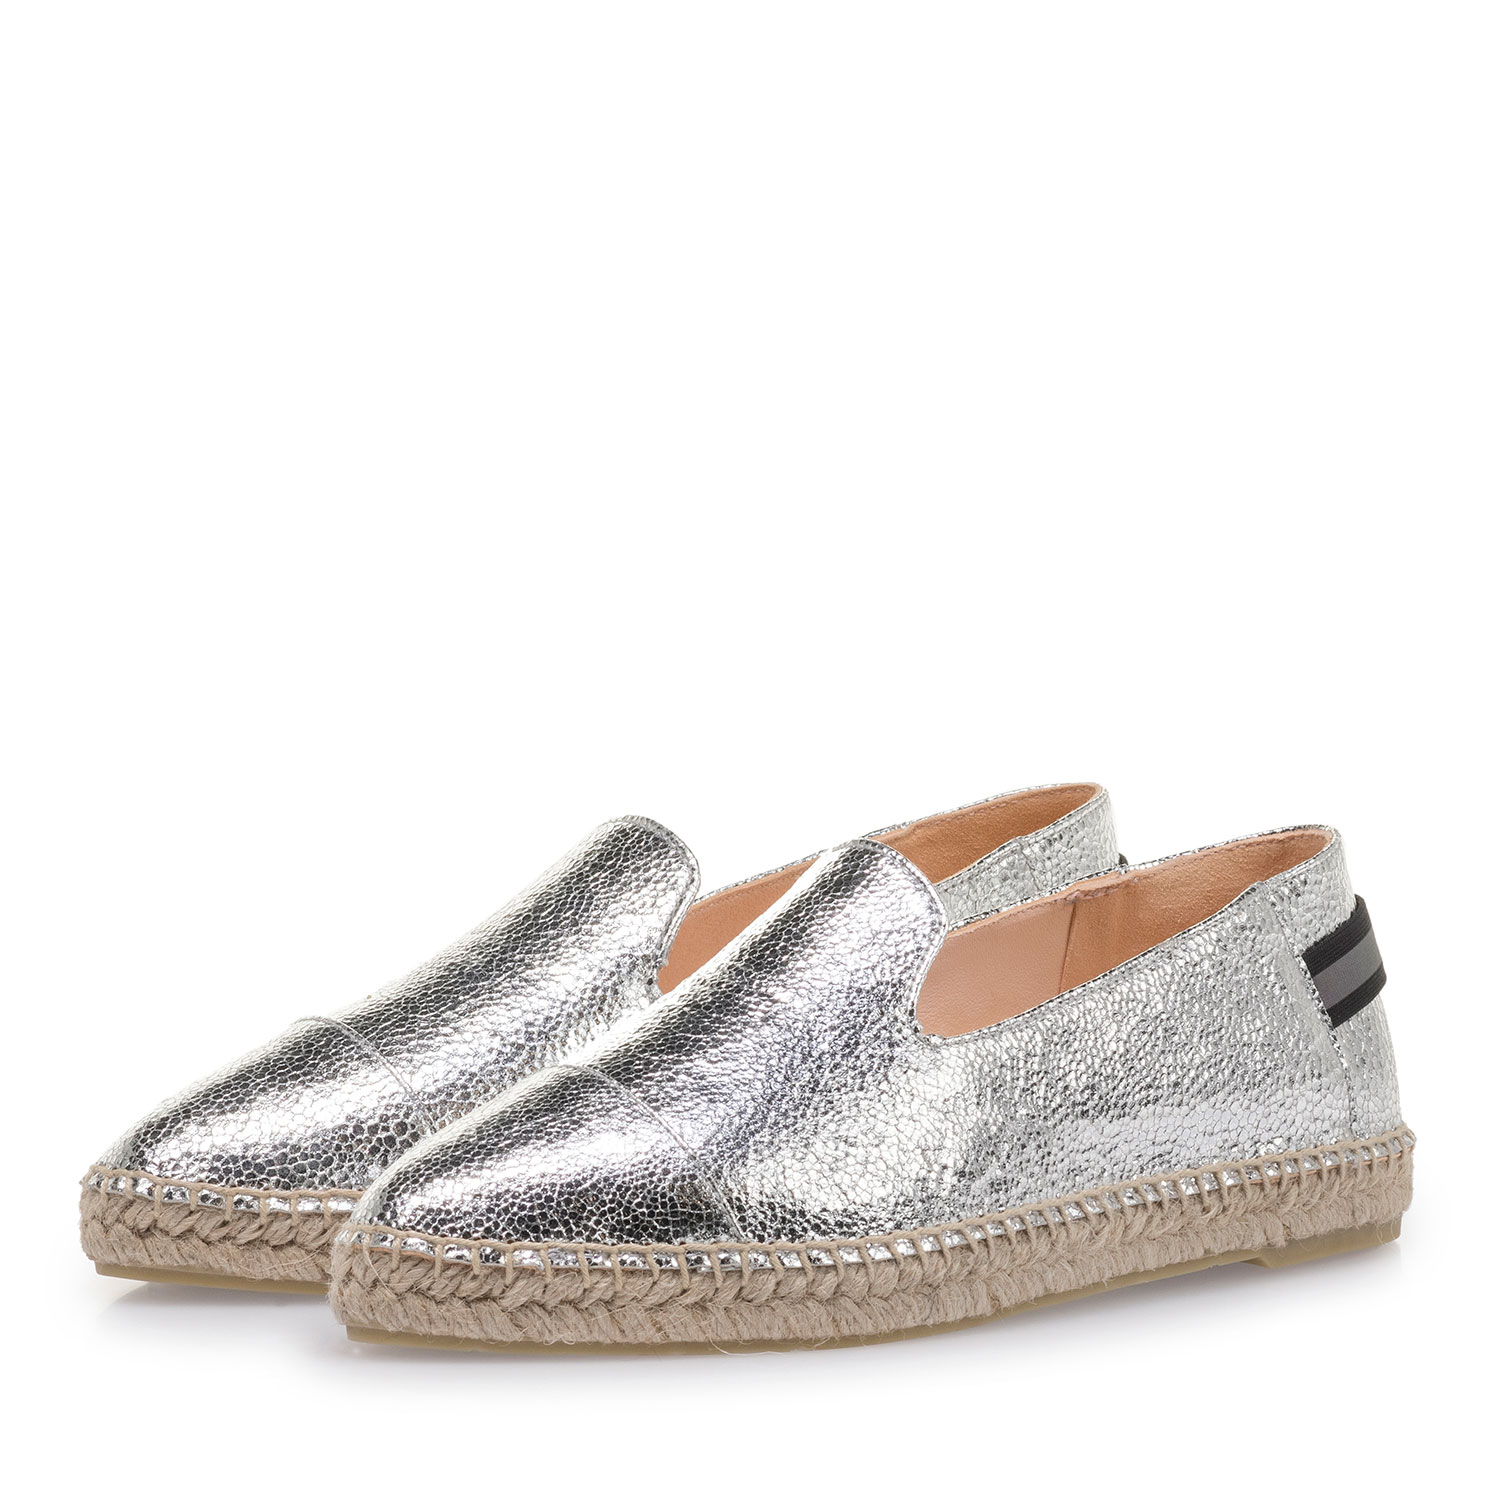 85420/03 - Silver leather espadrilles with metallic print